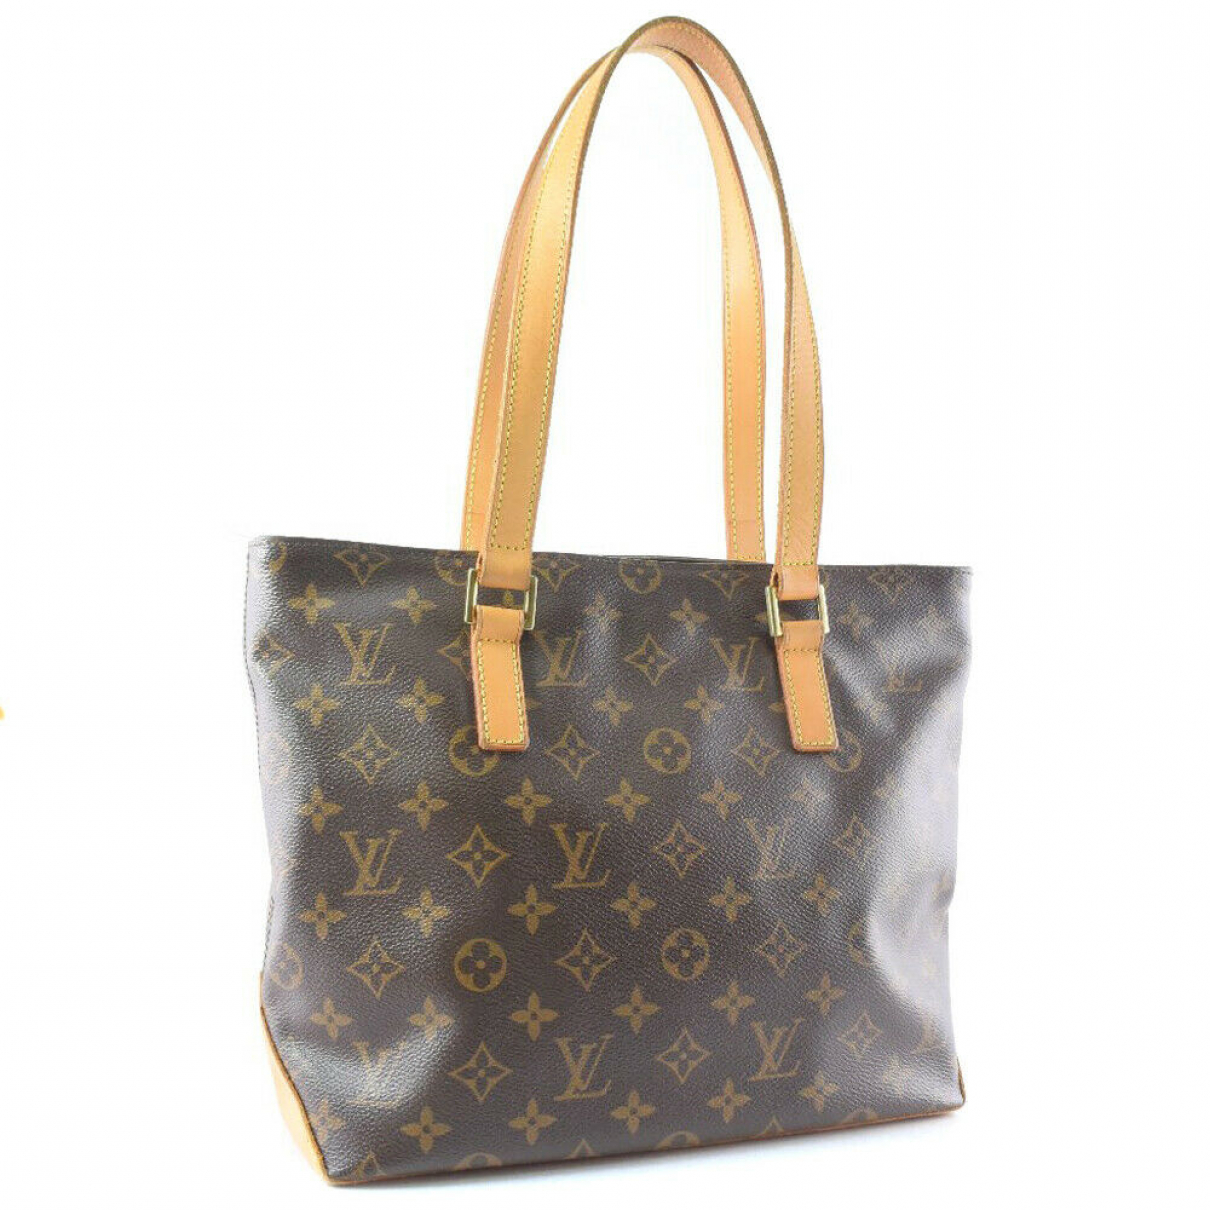 Louis Vuitton \N Leather handbag for Women \N